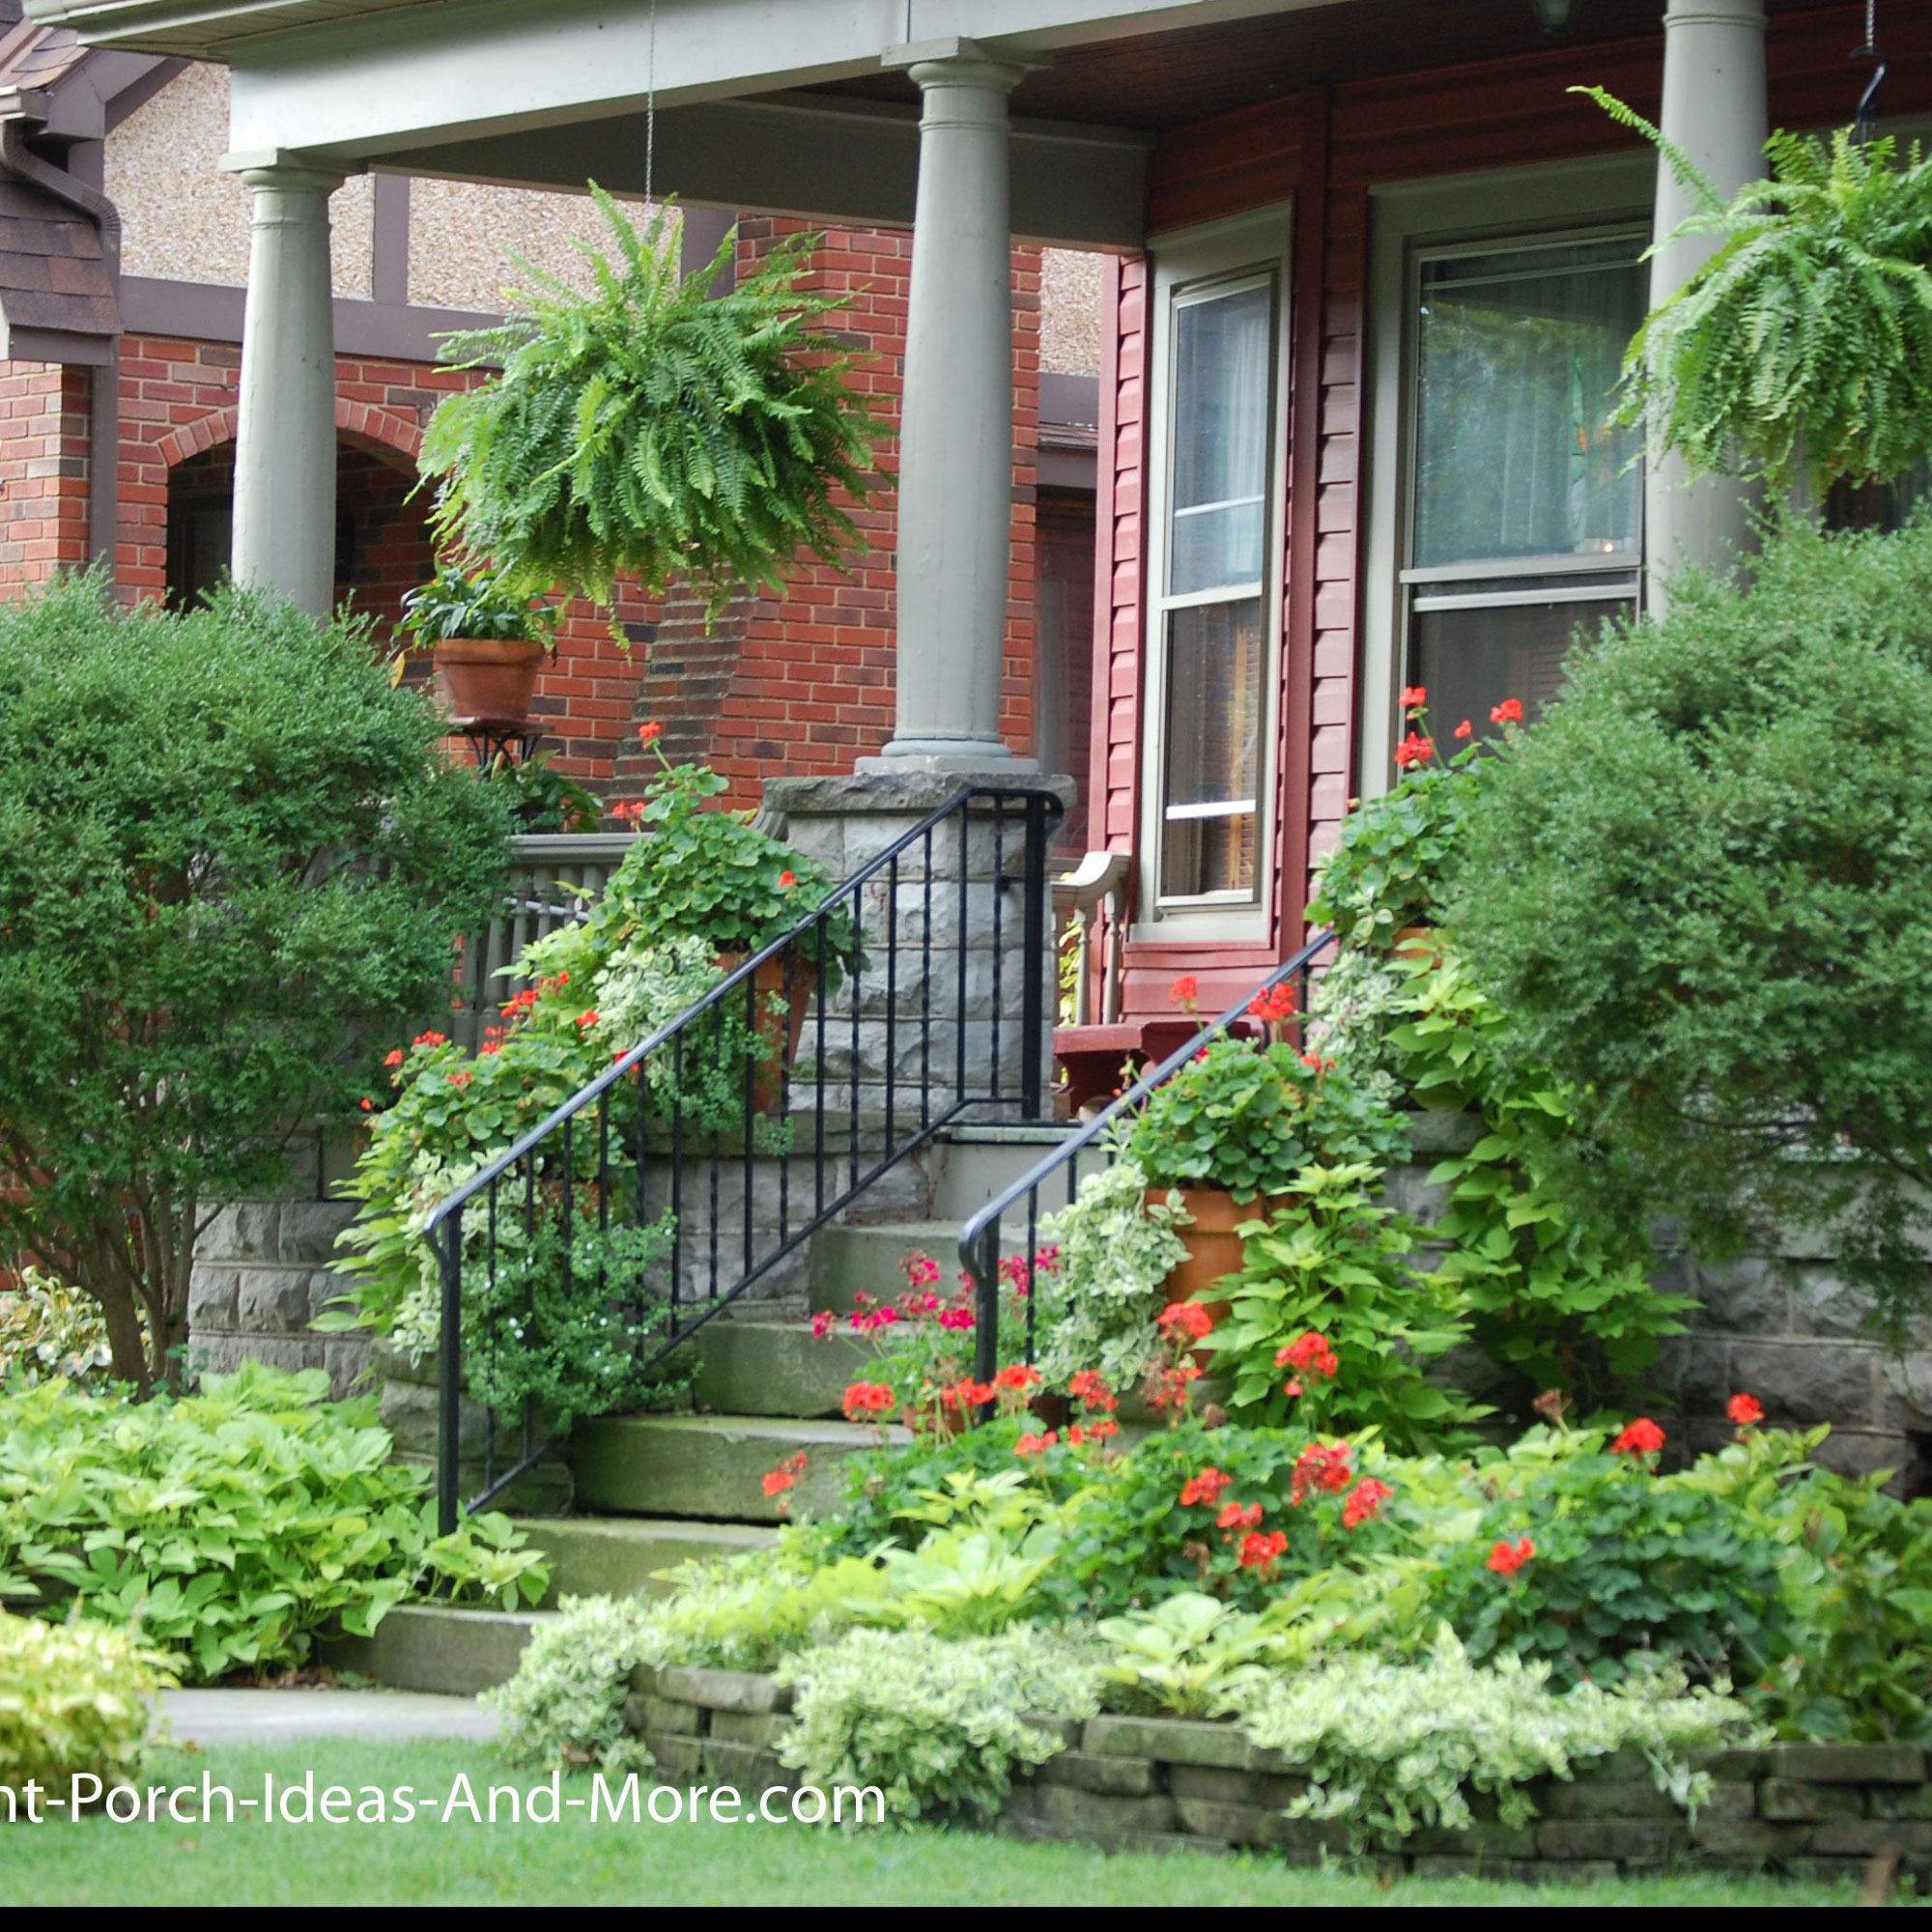 Porch landscaping ideas for your front yard and more for Landscaping tips